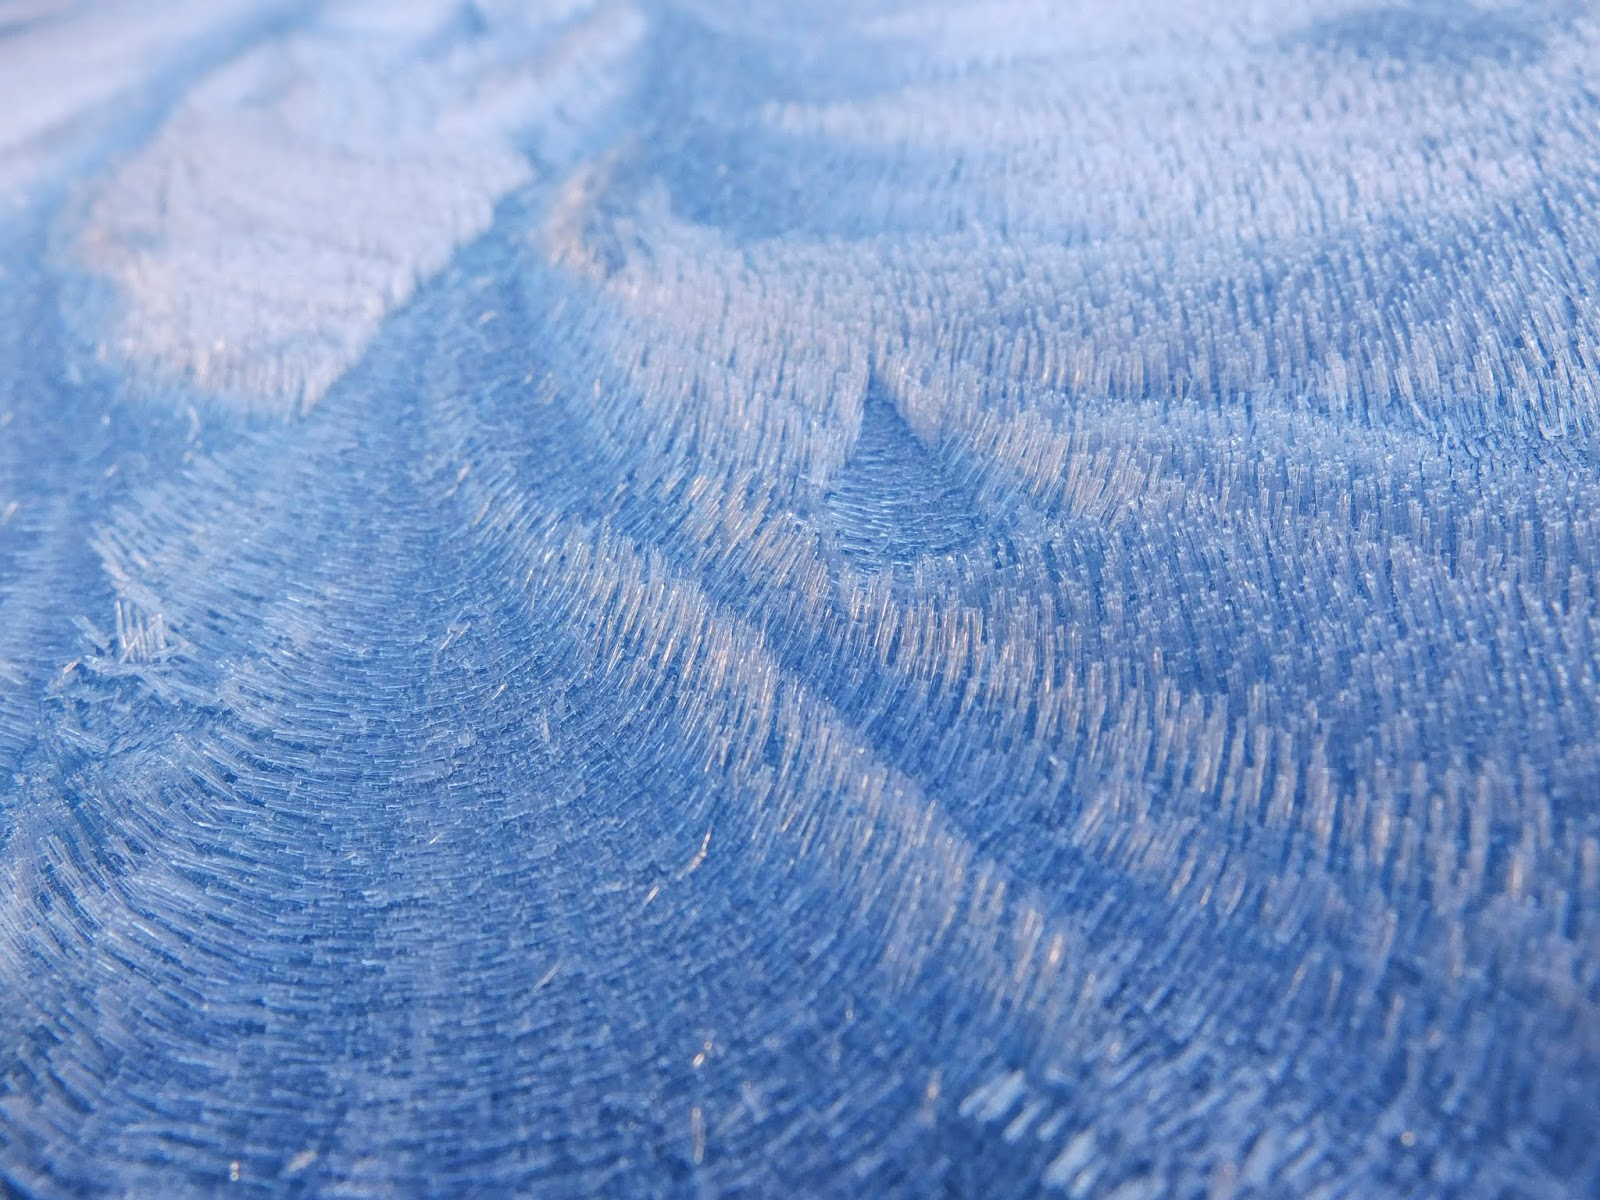 Close up of frost twinkling in the sunlight.